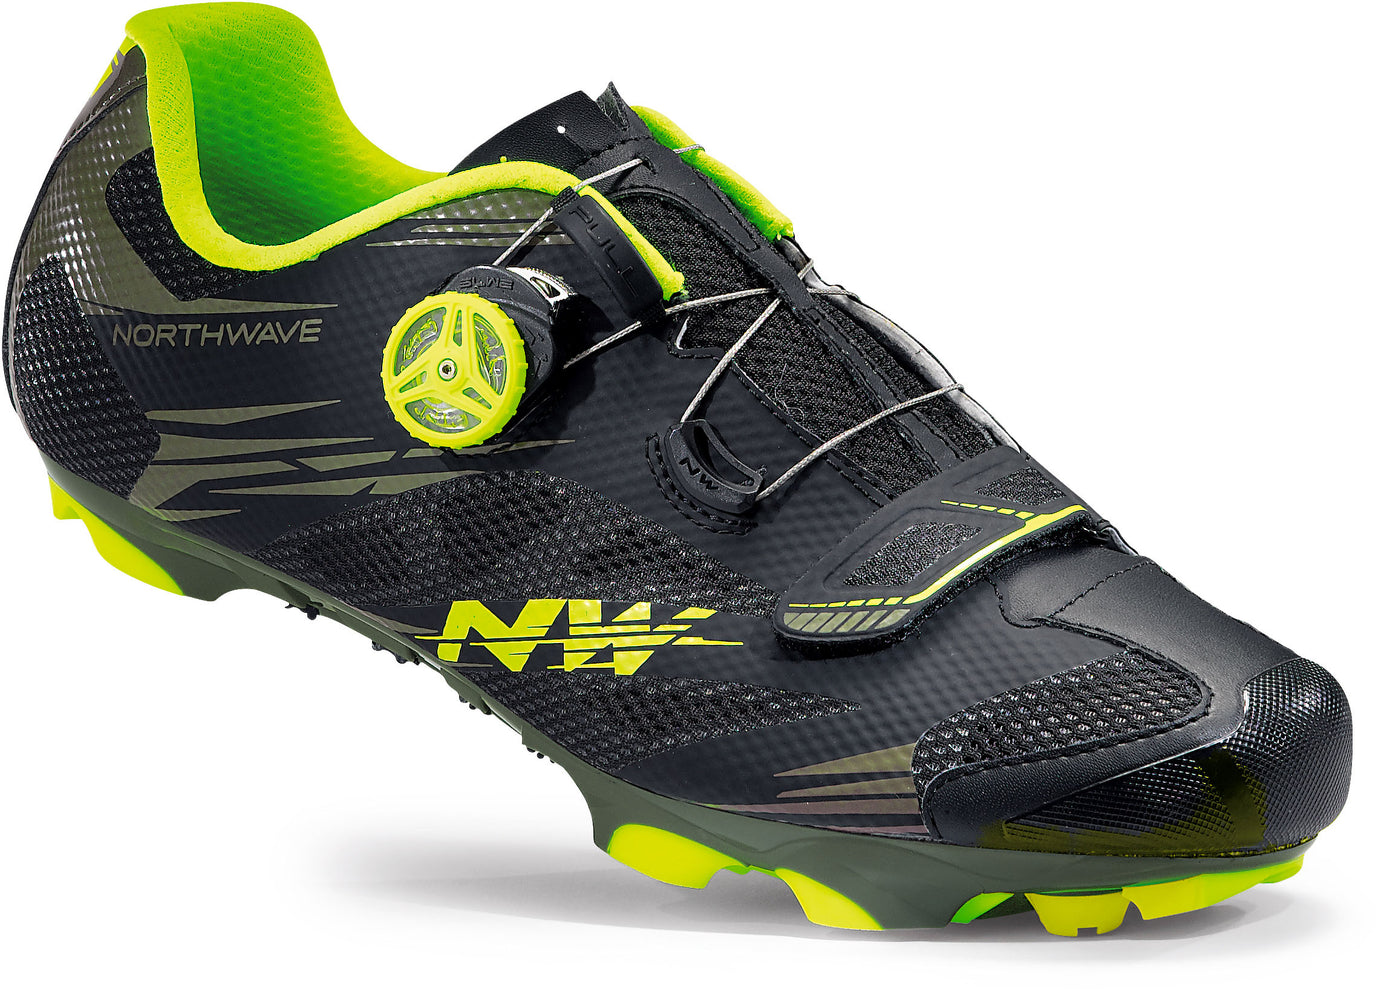 Northwave Scorpius 2 Plus Clipless Shoes-Military Black/Flo Yellow